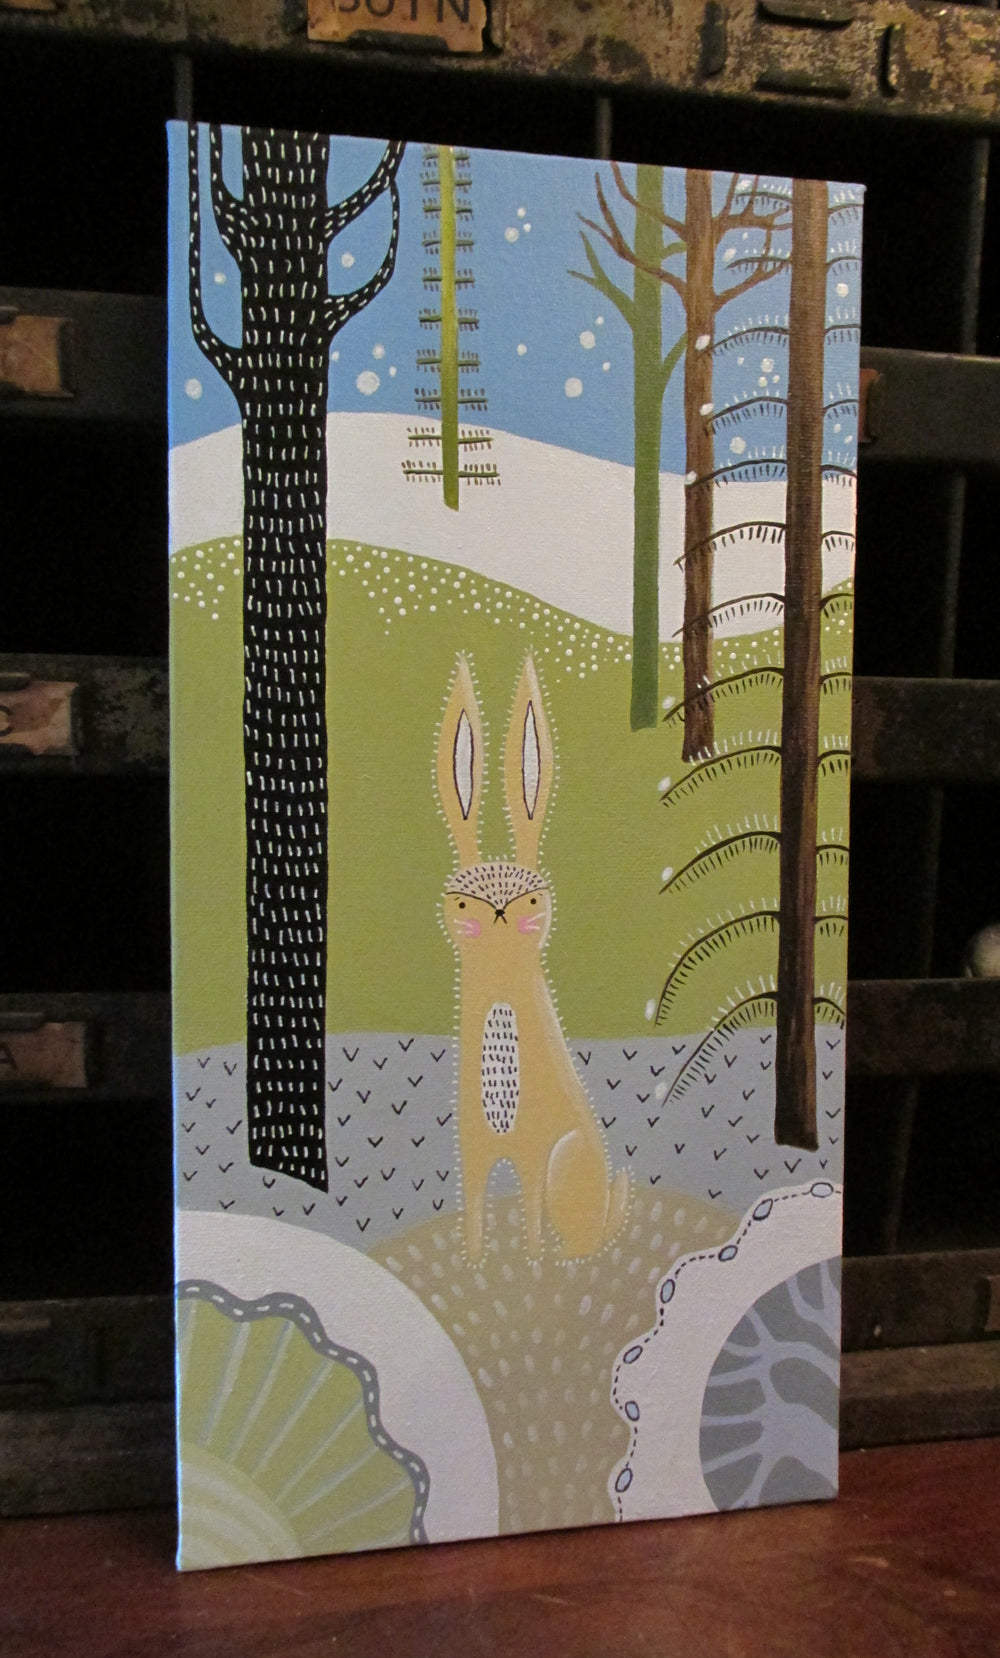 Folk art style painting of rabbit in the woods